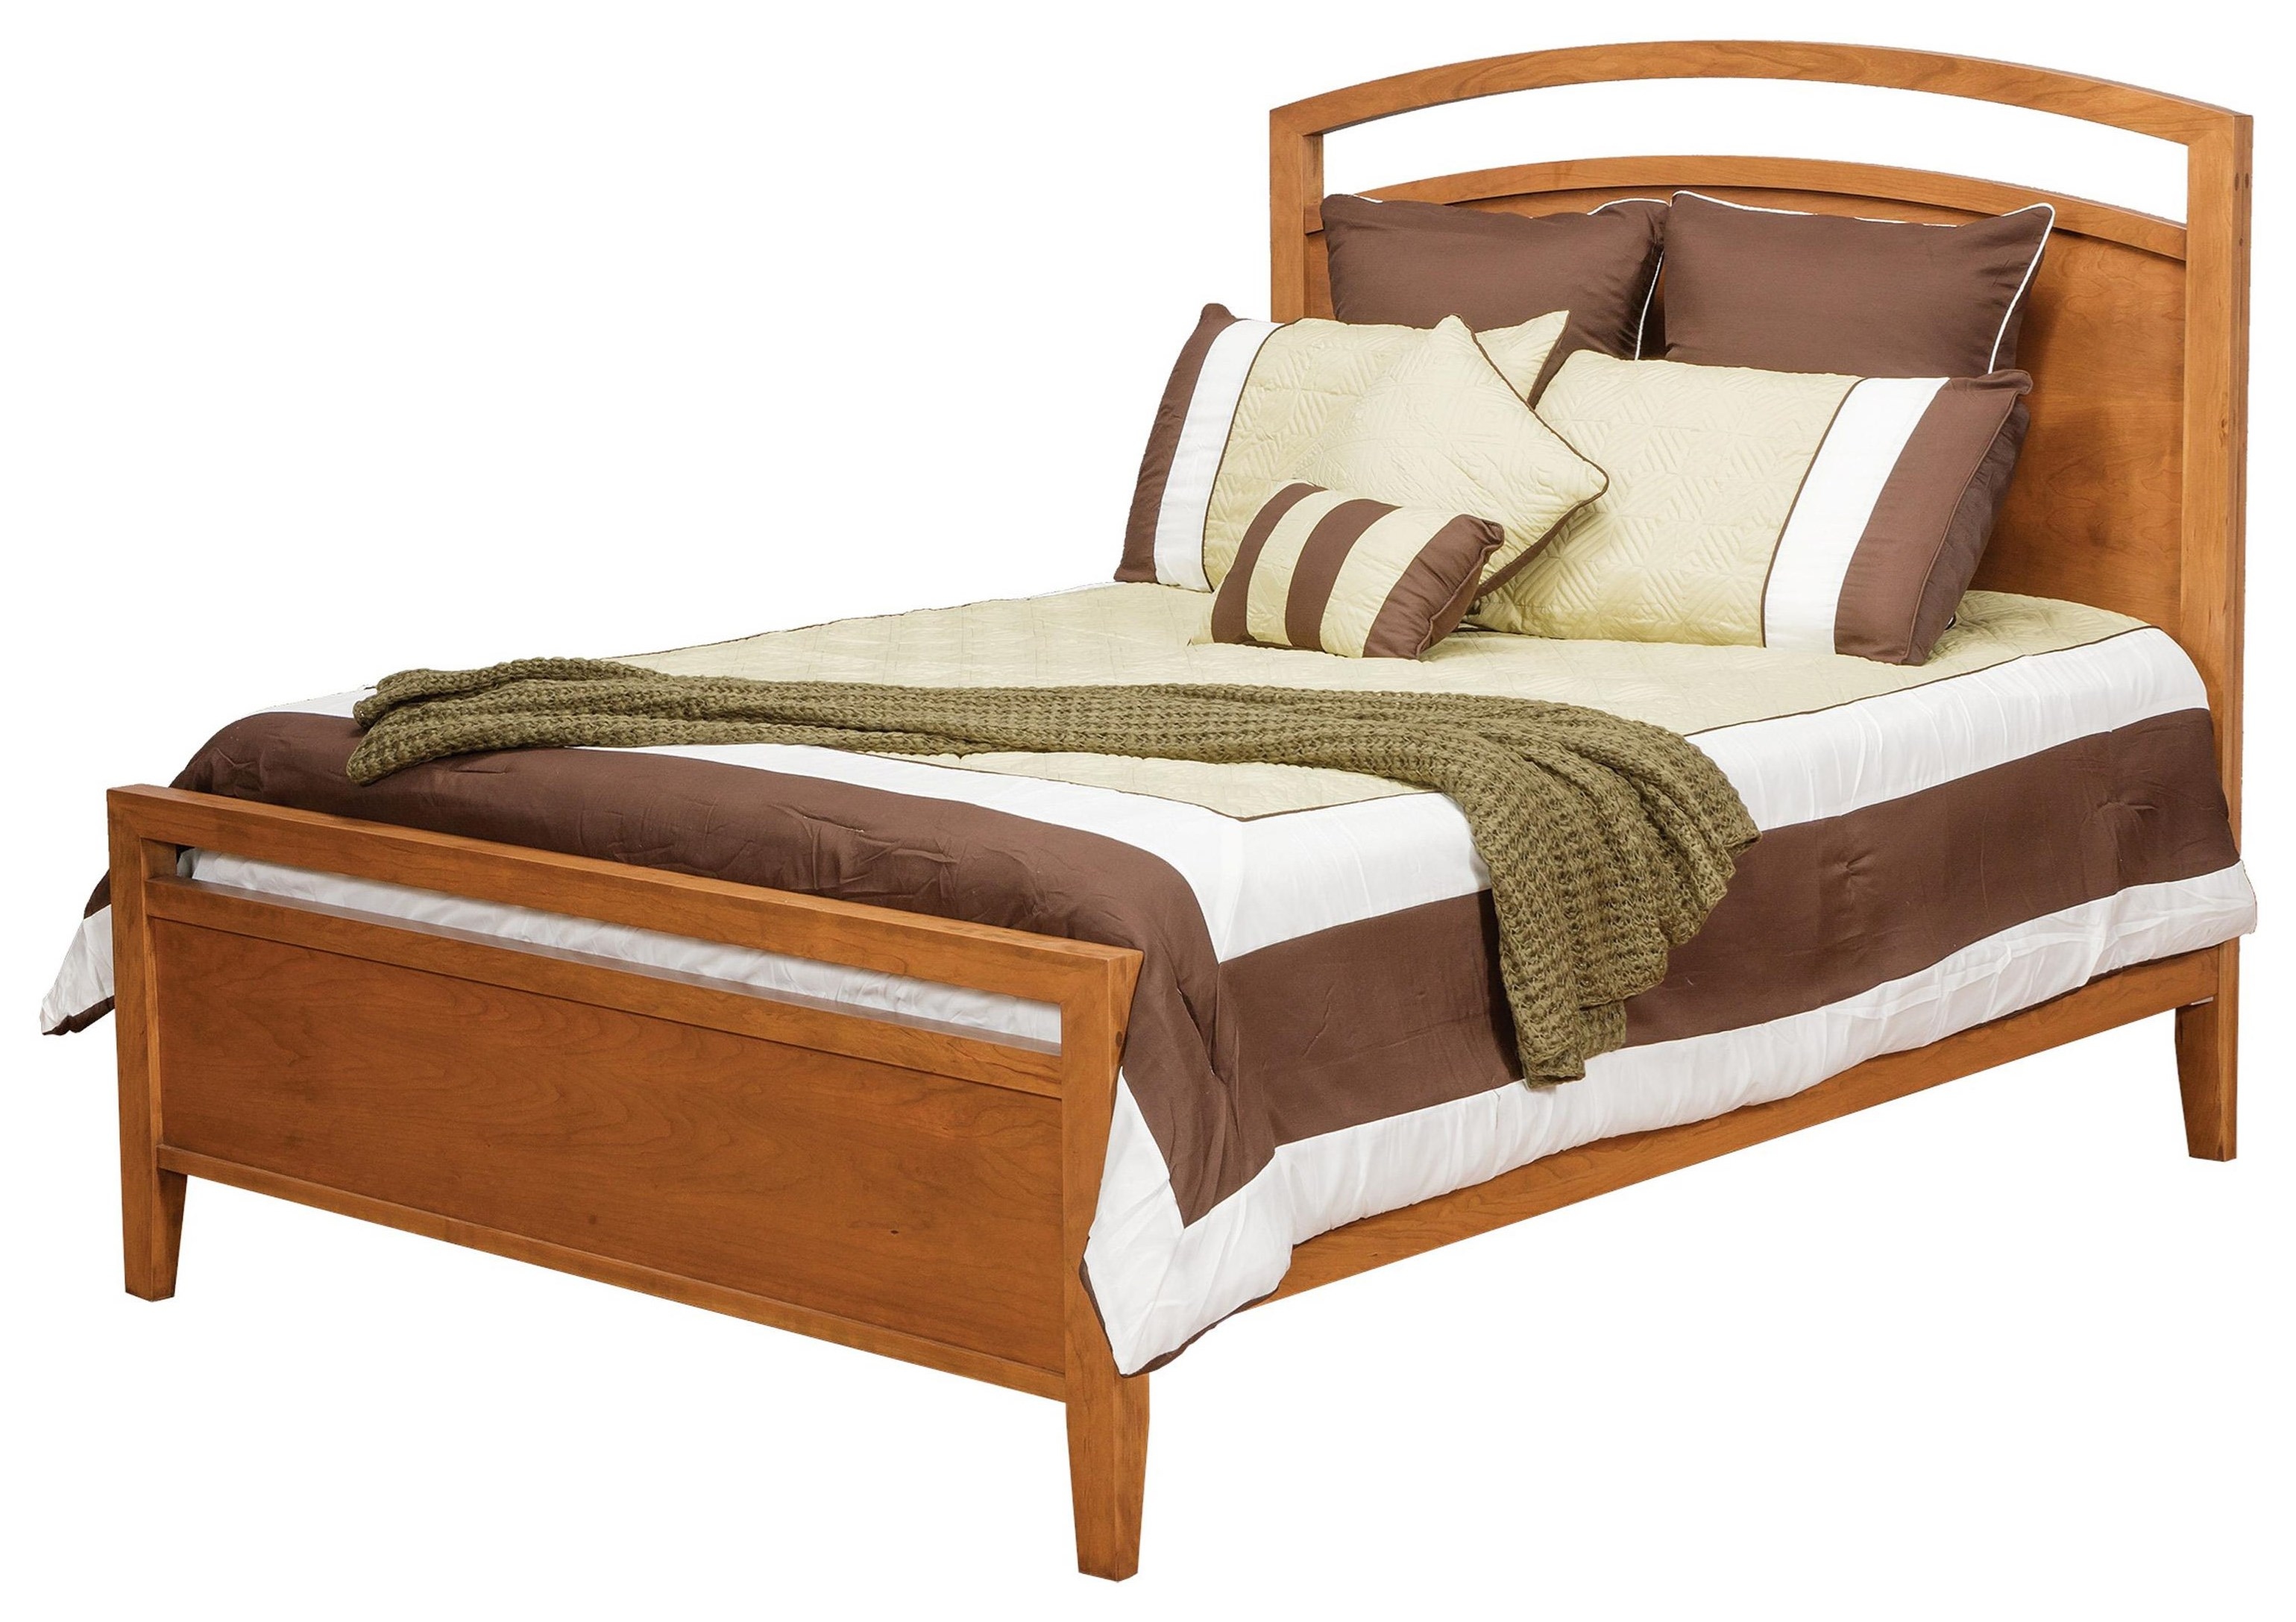 Modern QUEEN NOUVEAU BED by Daniel's Amish at Johnny Janosik